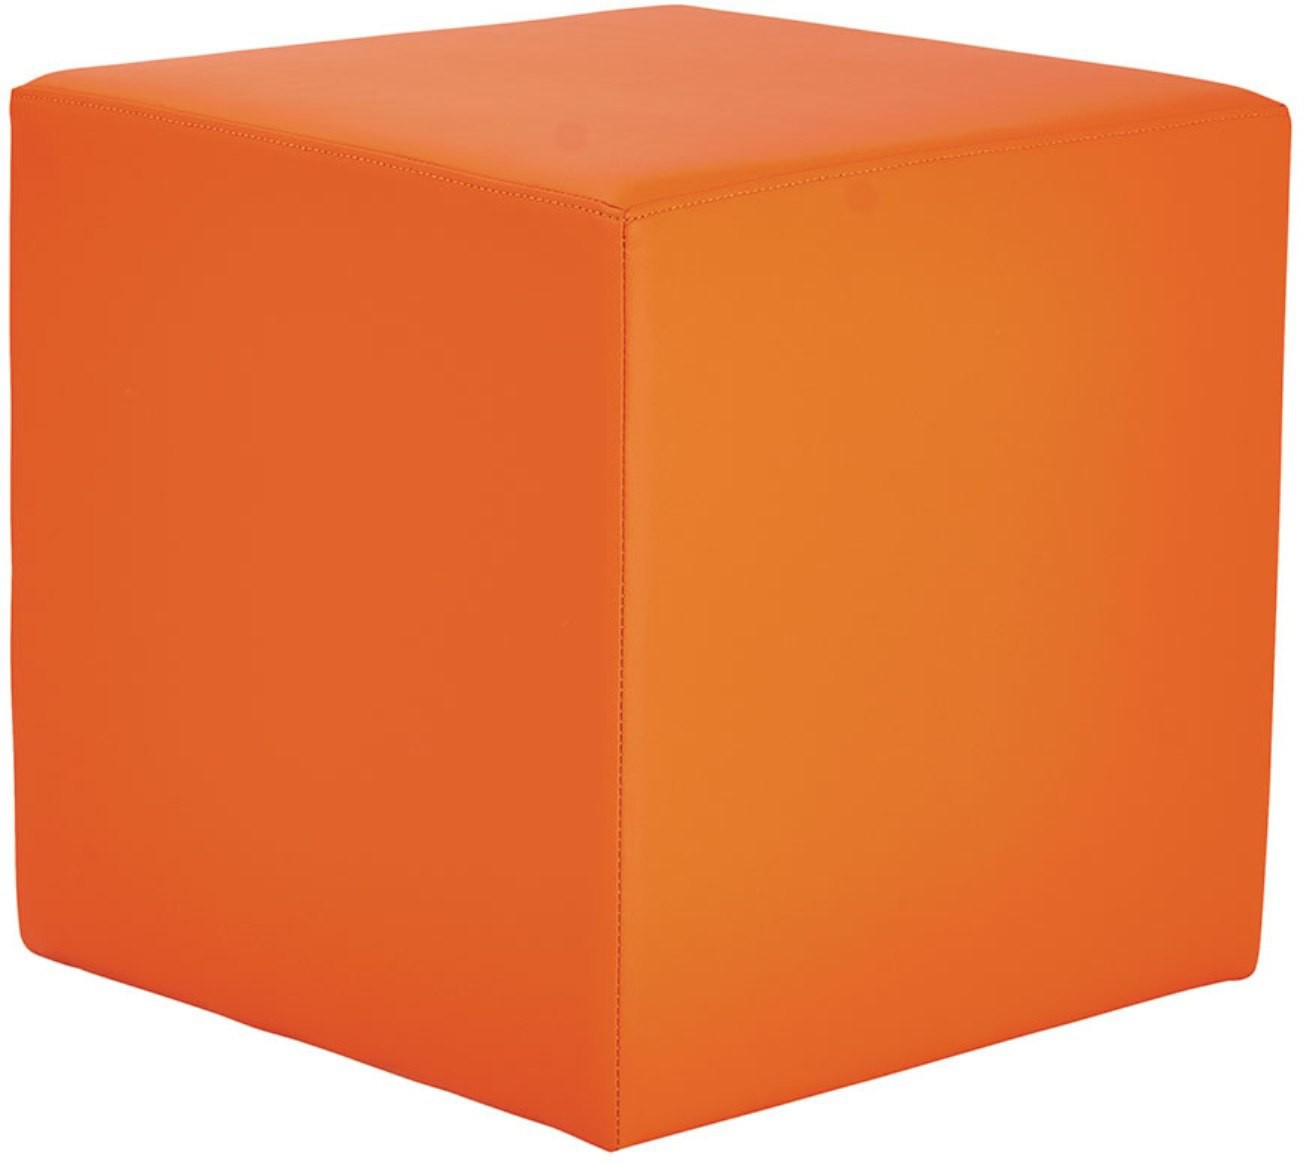 View Black Square Engineered Wood Standard Ottoman(Finish Color - Orange) Furniture (black square)